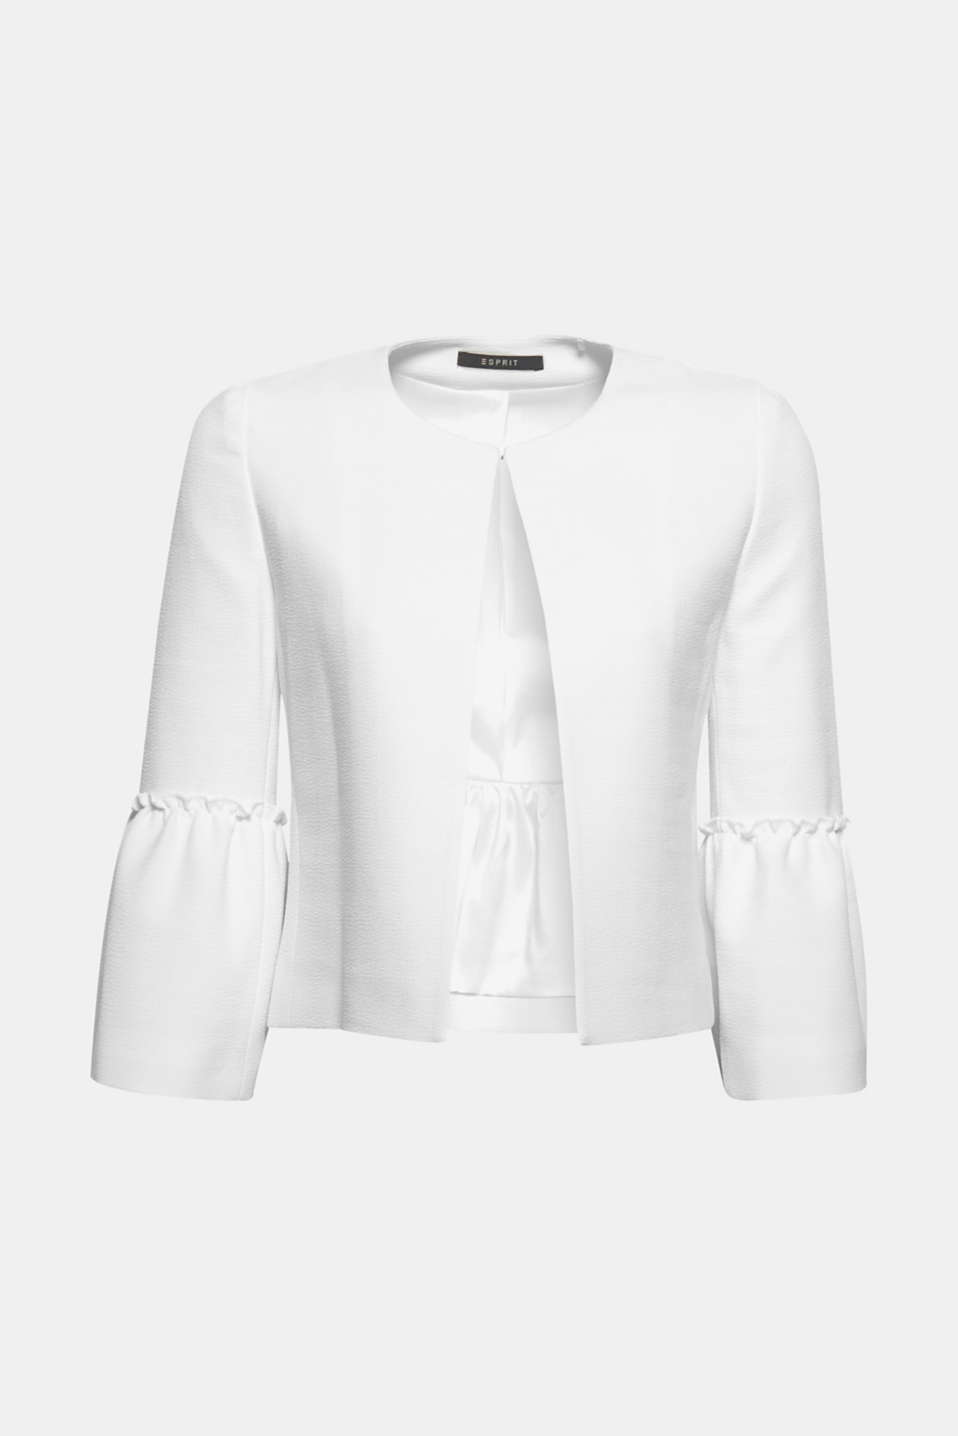 Makes your look super chic: textured, bolero jacket with three-quarter length flounce sleeves.